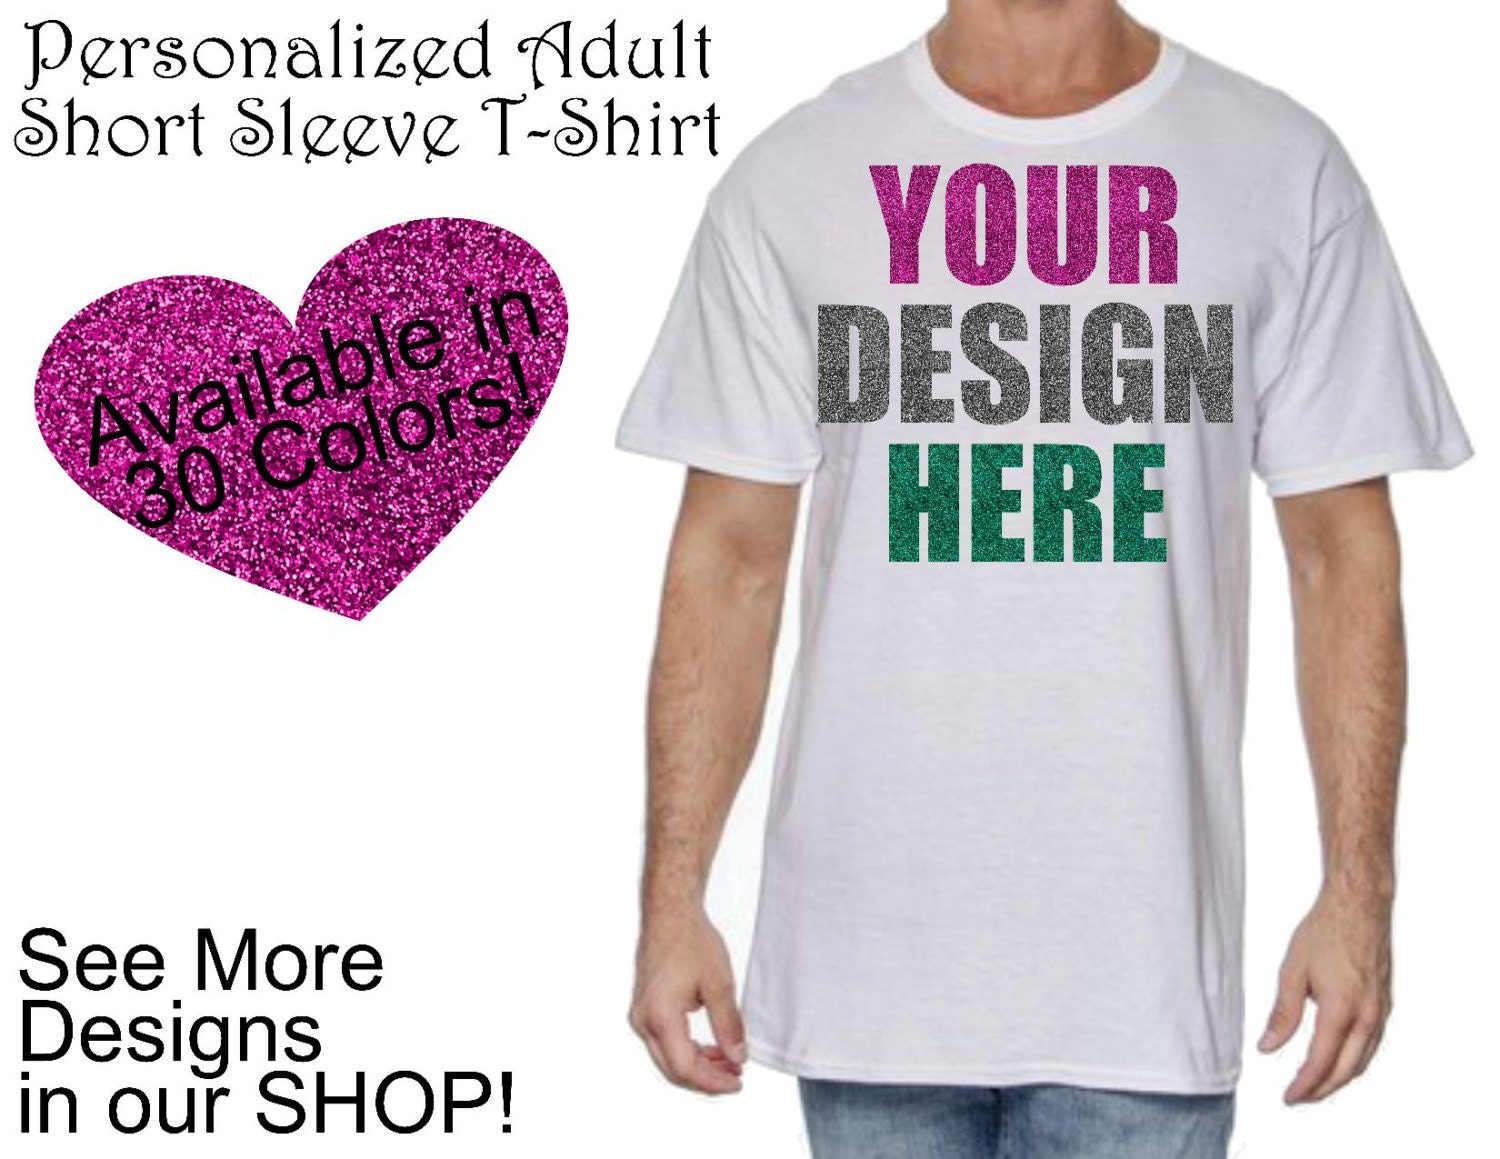 Personalized adult short sleeve t shirt create your own for Custom shirts design your own